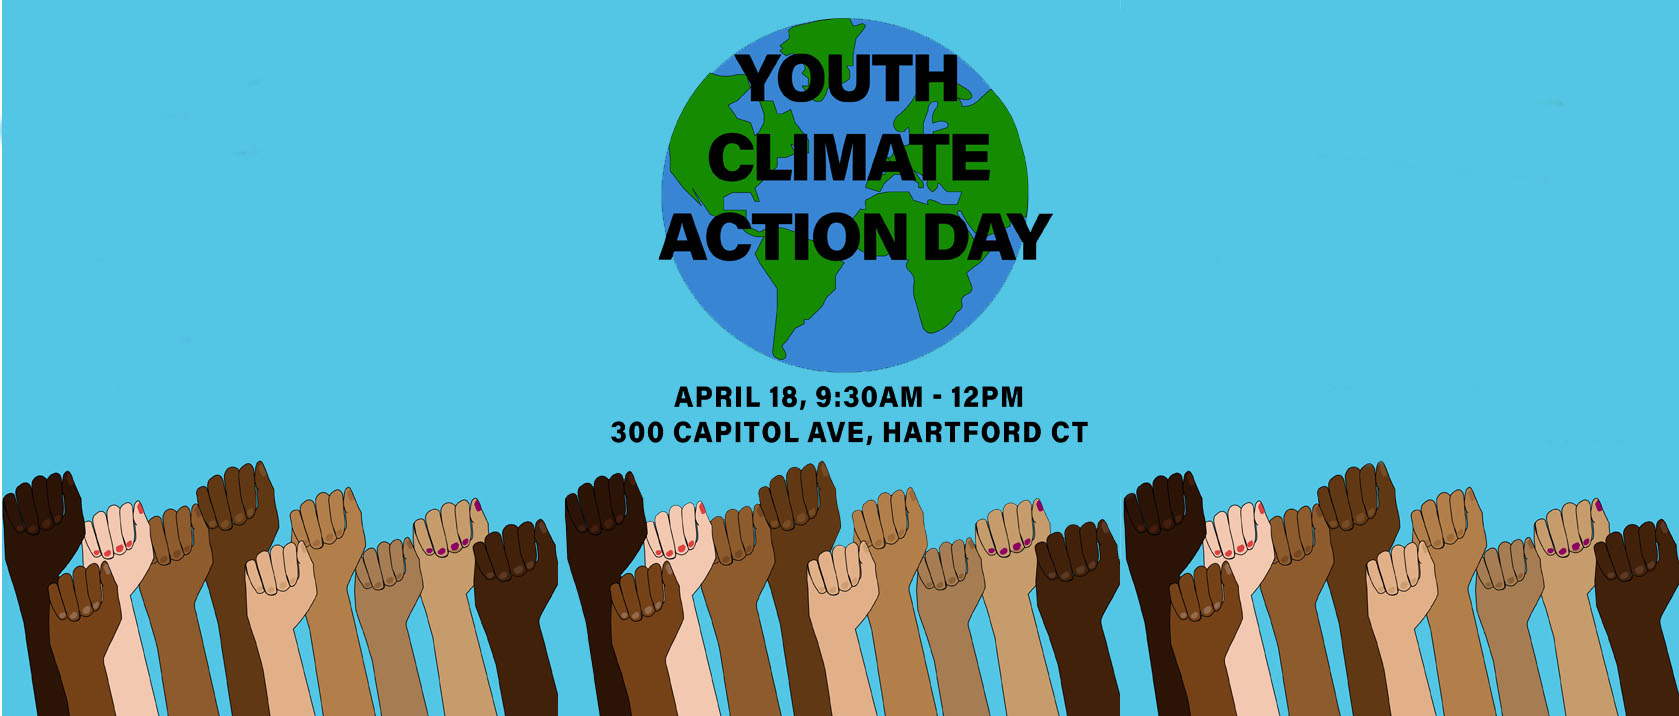 You are invited April 18 for real talk, real action on climate change